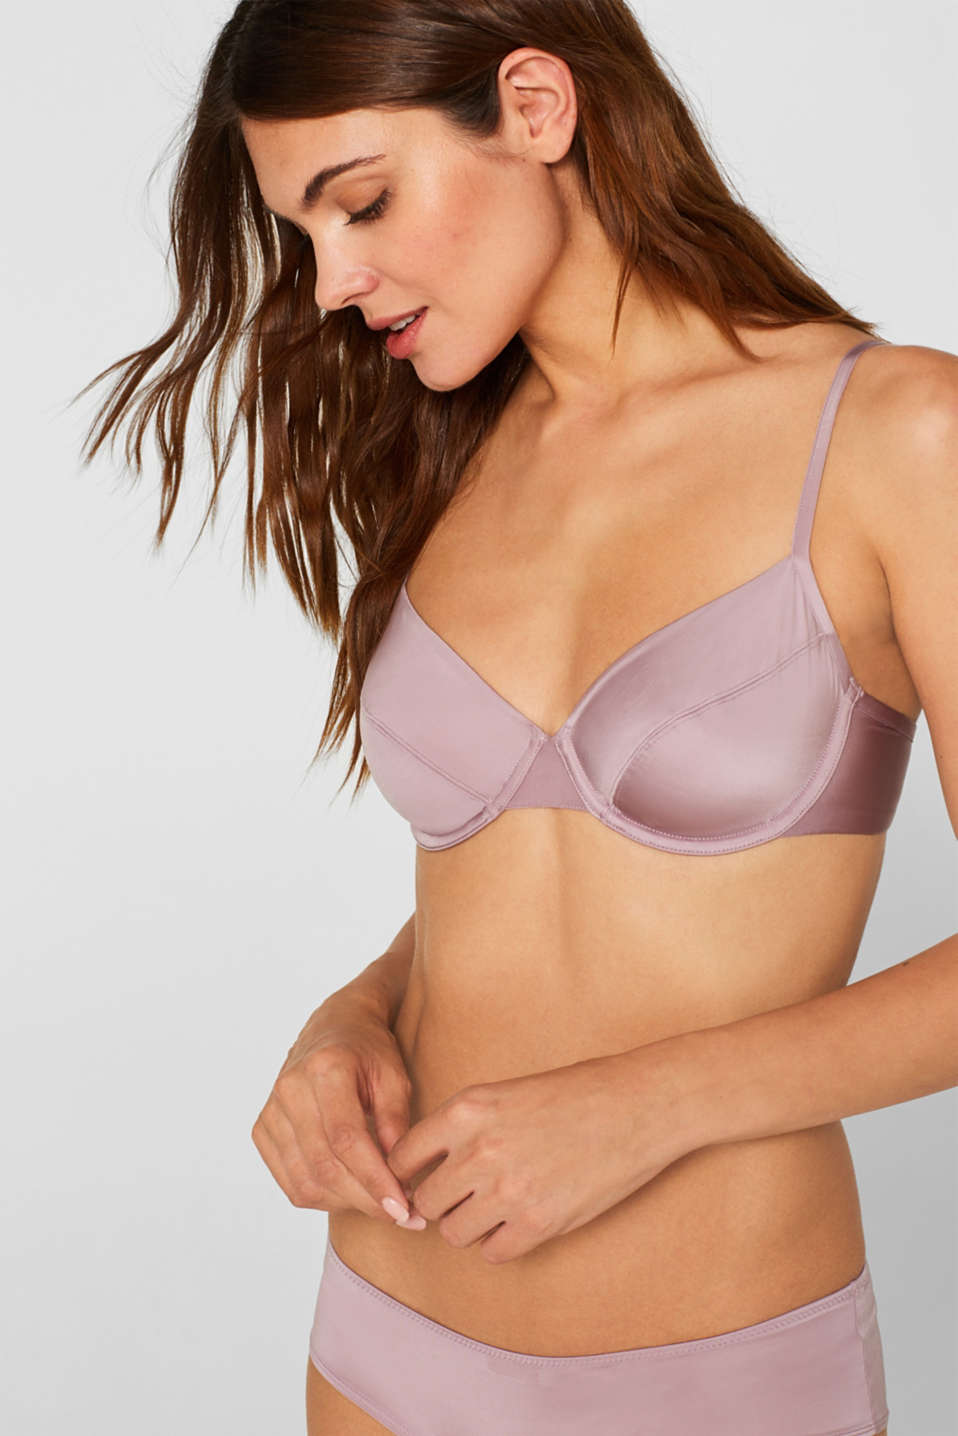 Esprit - Unpadded underwire bra in a clean, basic look